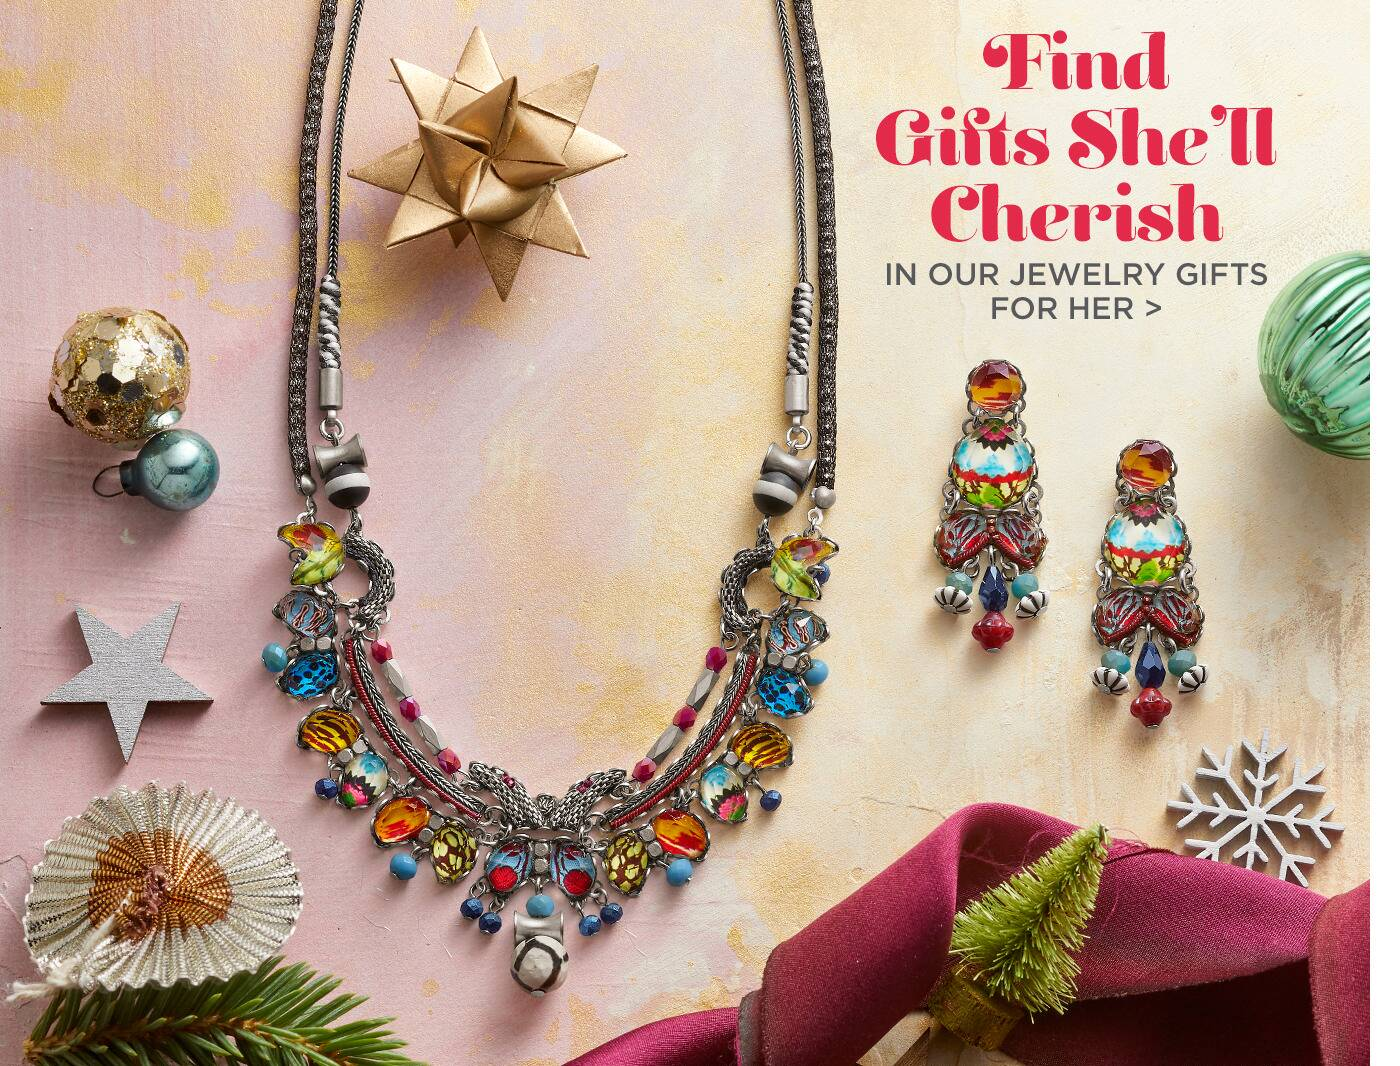 Shop Jewelry Gifts for Her